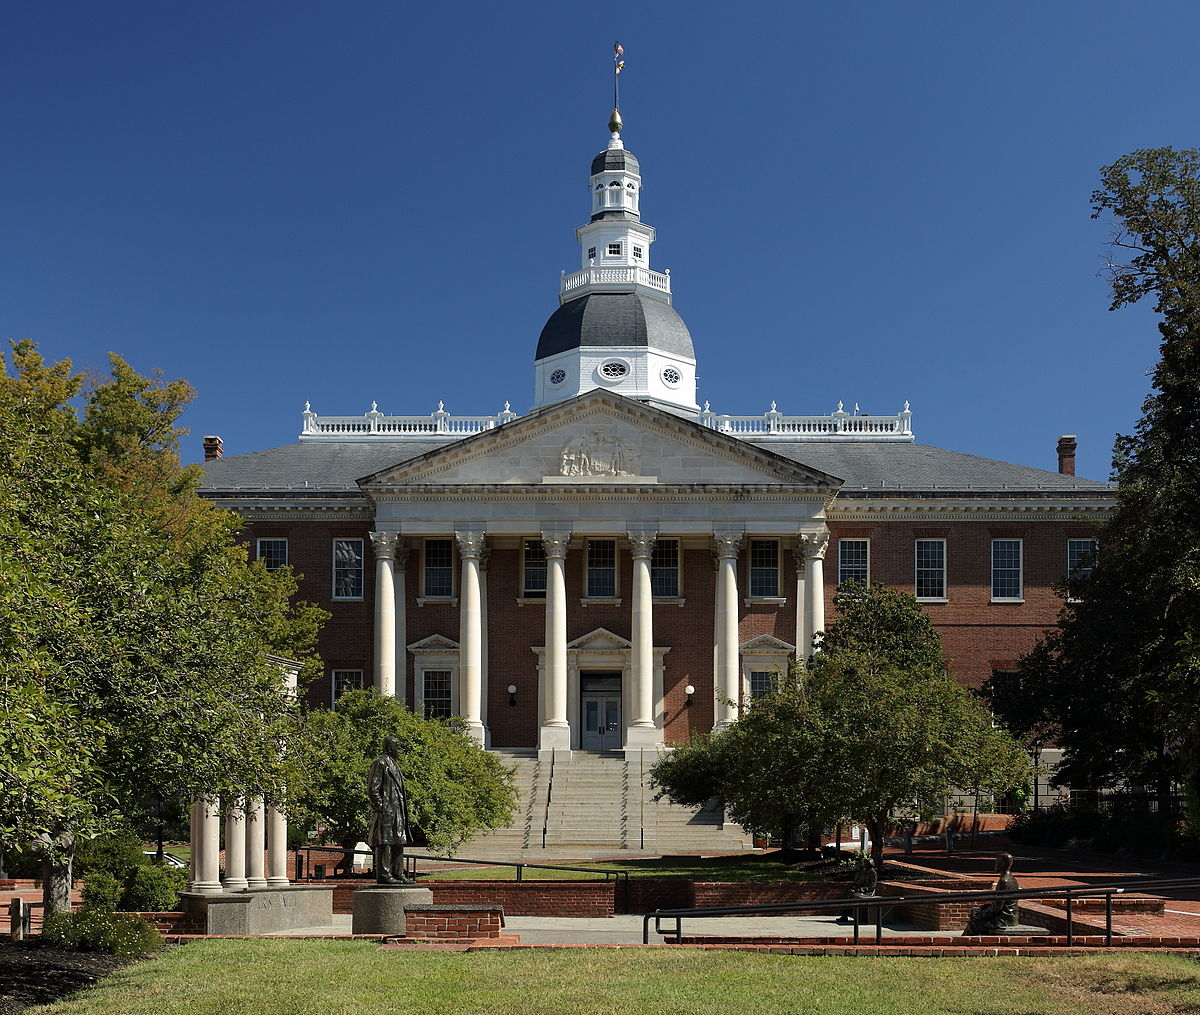 Maryland State House (Paul Shapin)